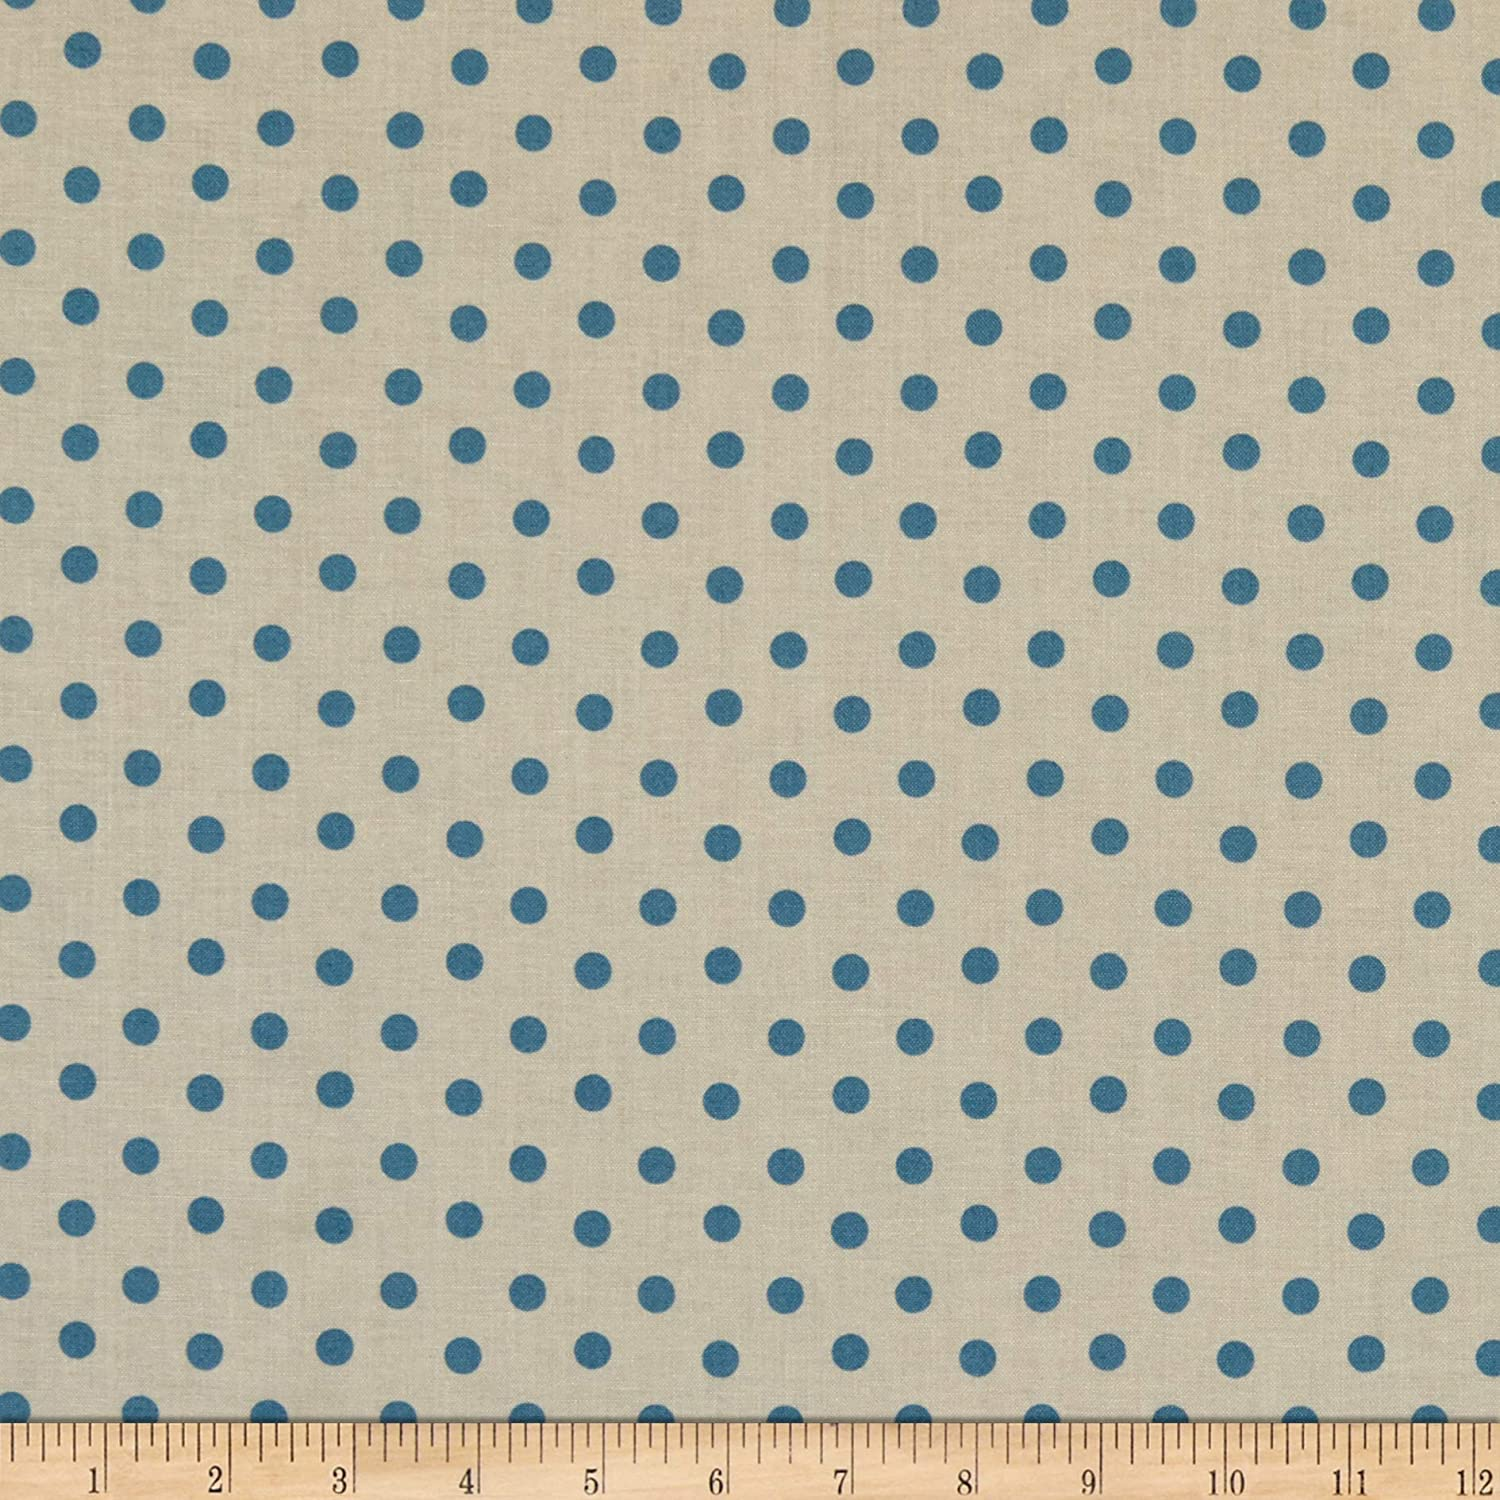 Andover Delfina PearlsIvory Fabric by the Yard